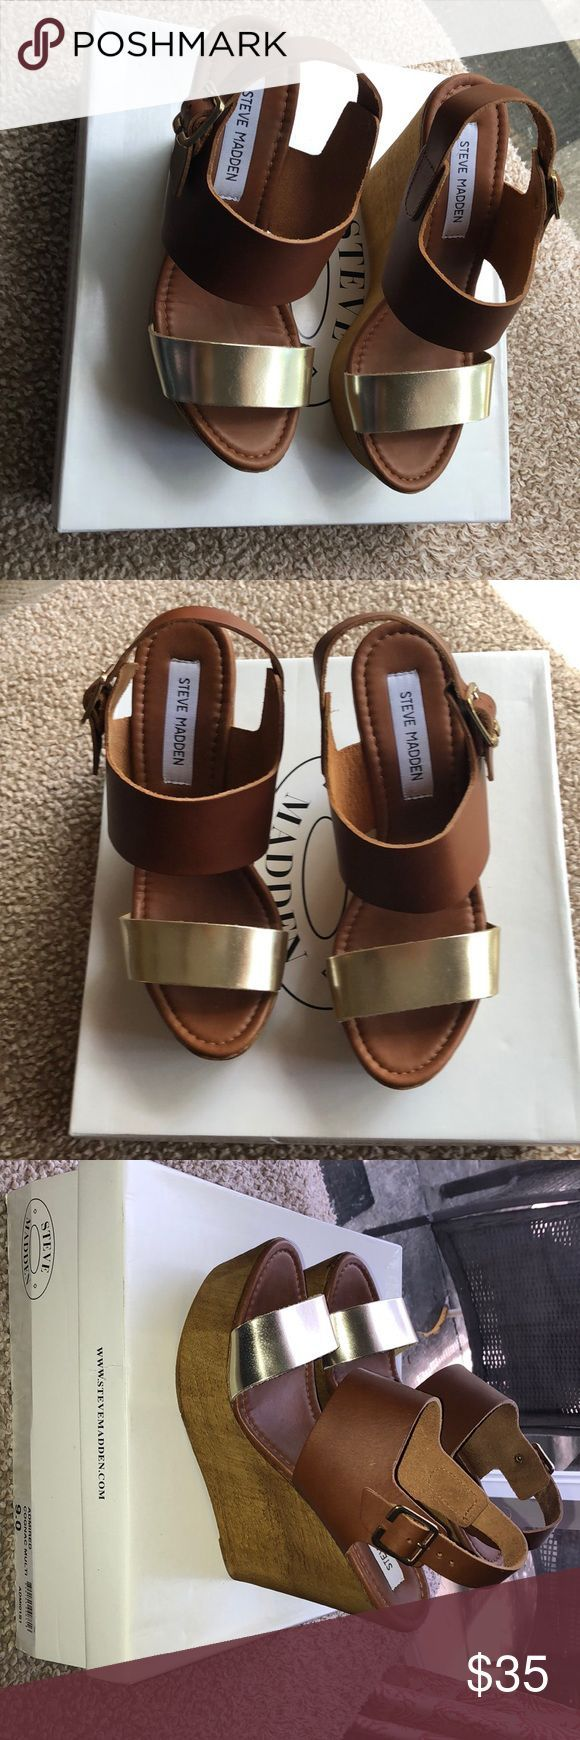 Steve Madden Wedges NIB Fabulous two tone wedges in cognac and gold. Never worn ...,  Steve Madden Wedges NIB Fabulous two tone wedges in cognac and gold. Never worn ...,